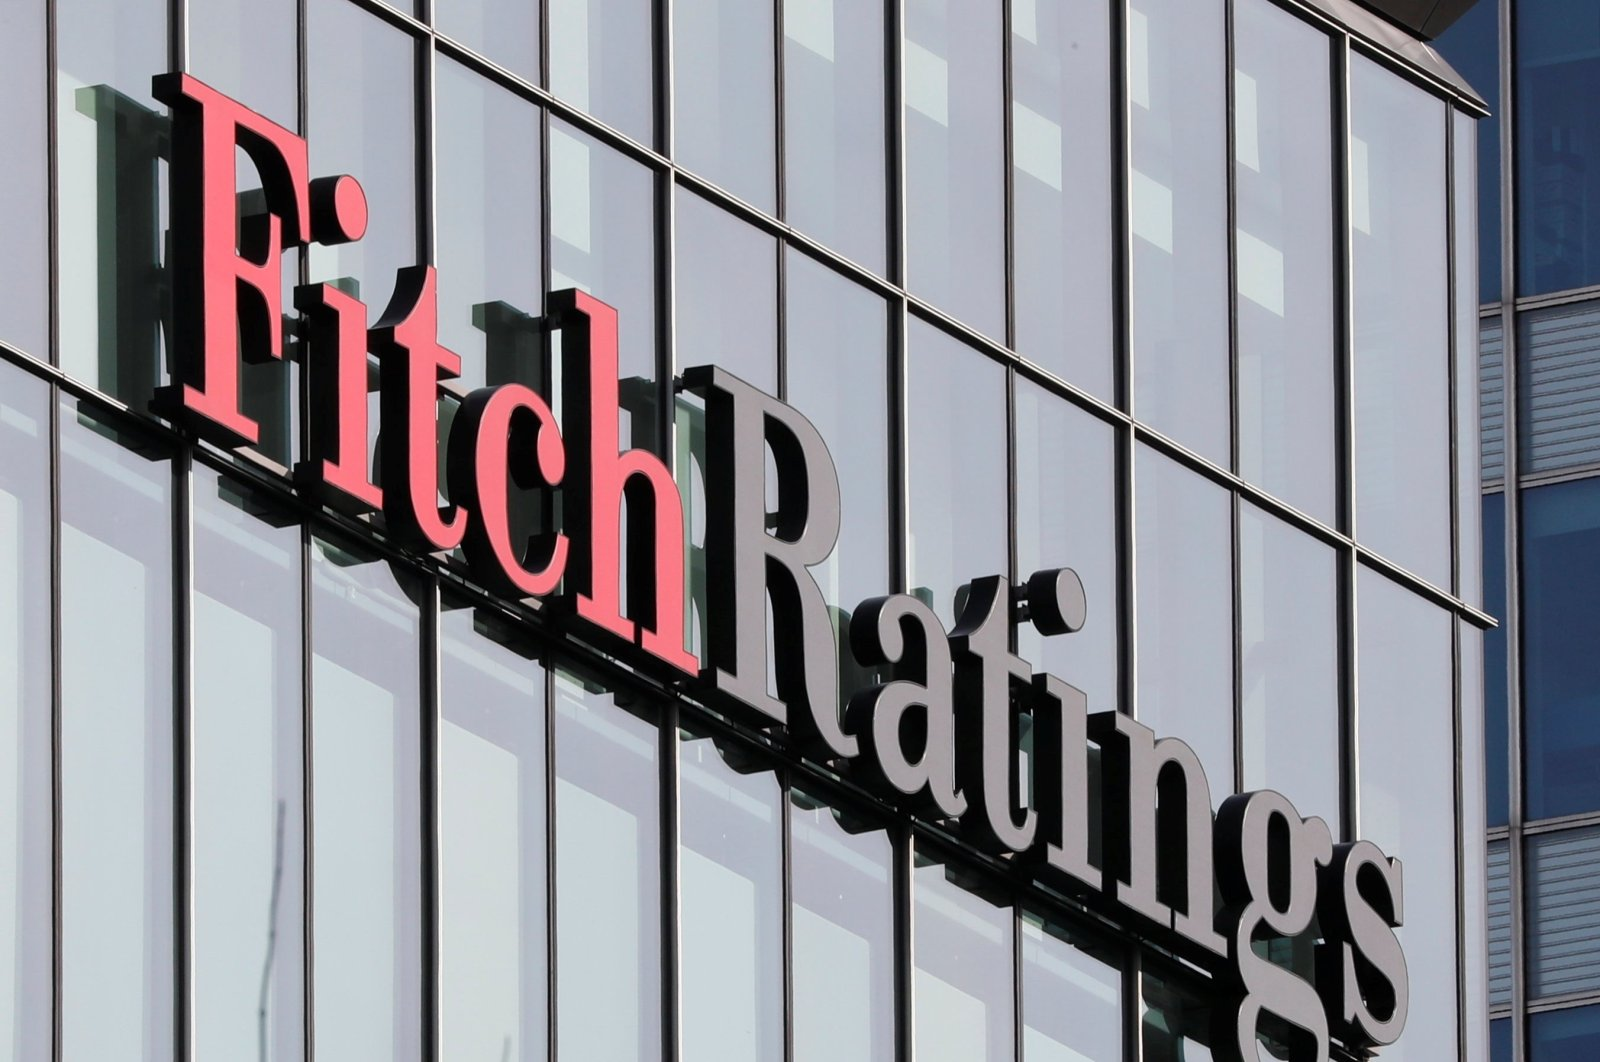 The Fitch Ratings logo is seen at their offices at Canary Wharf financial district in London, the U.K., on March 3, 2016. (REUTERS Photo)